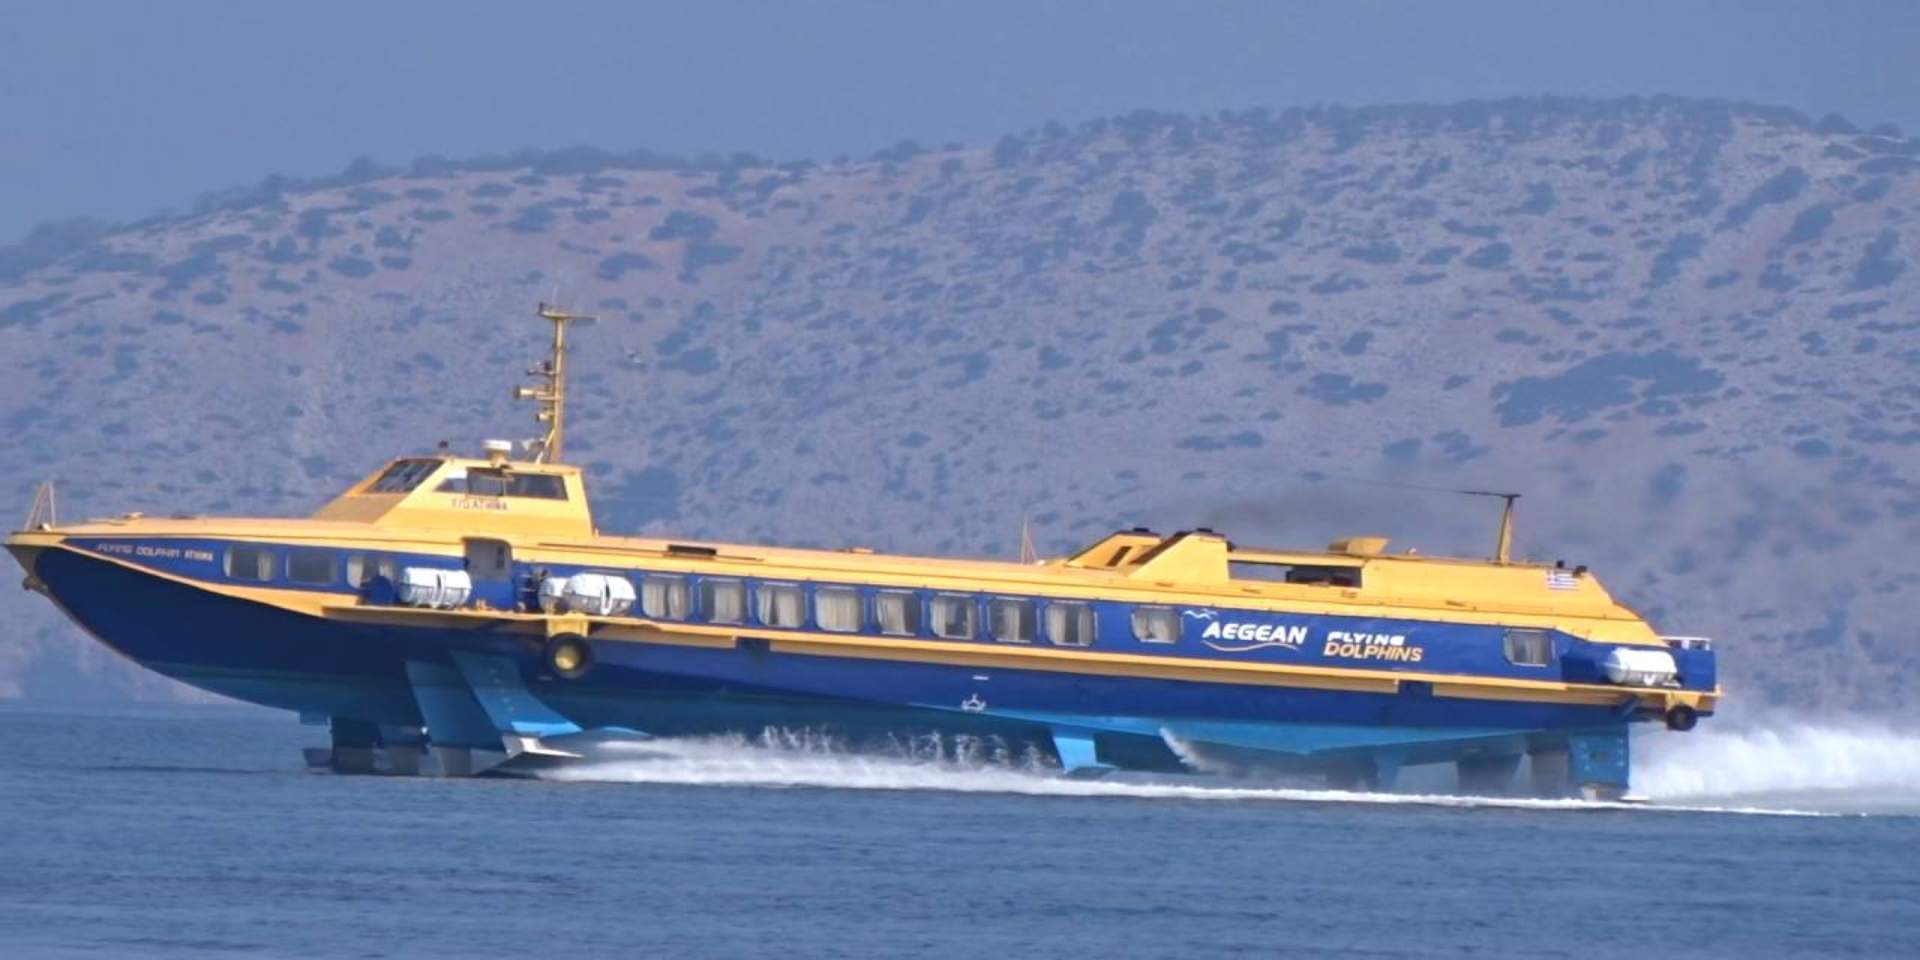 Aegean Flying Dolphins FD Athina